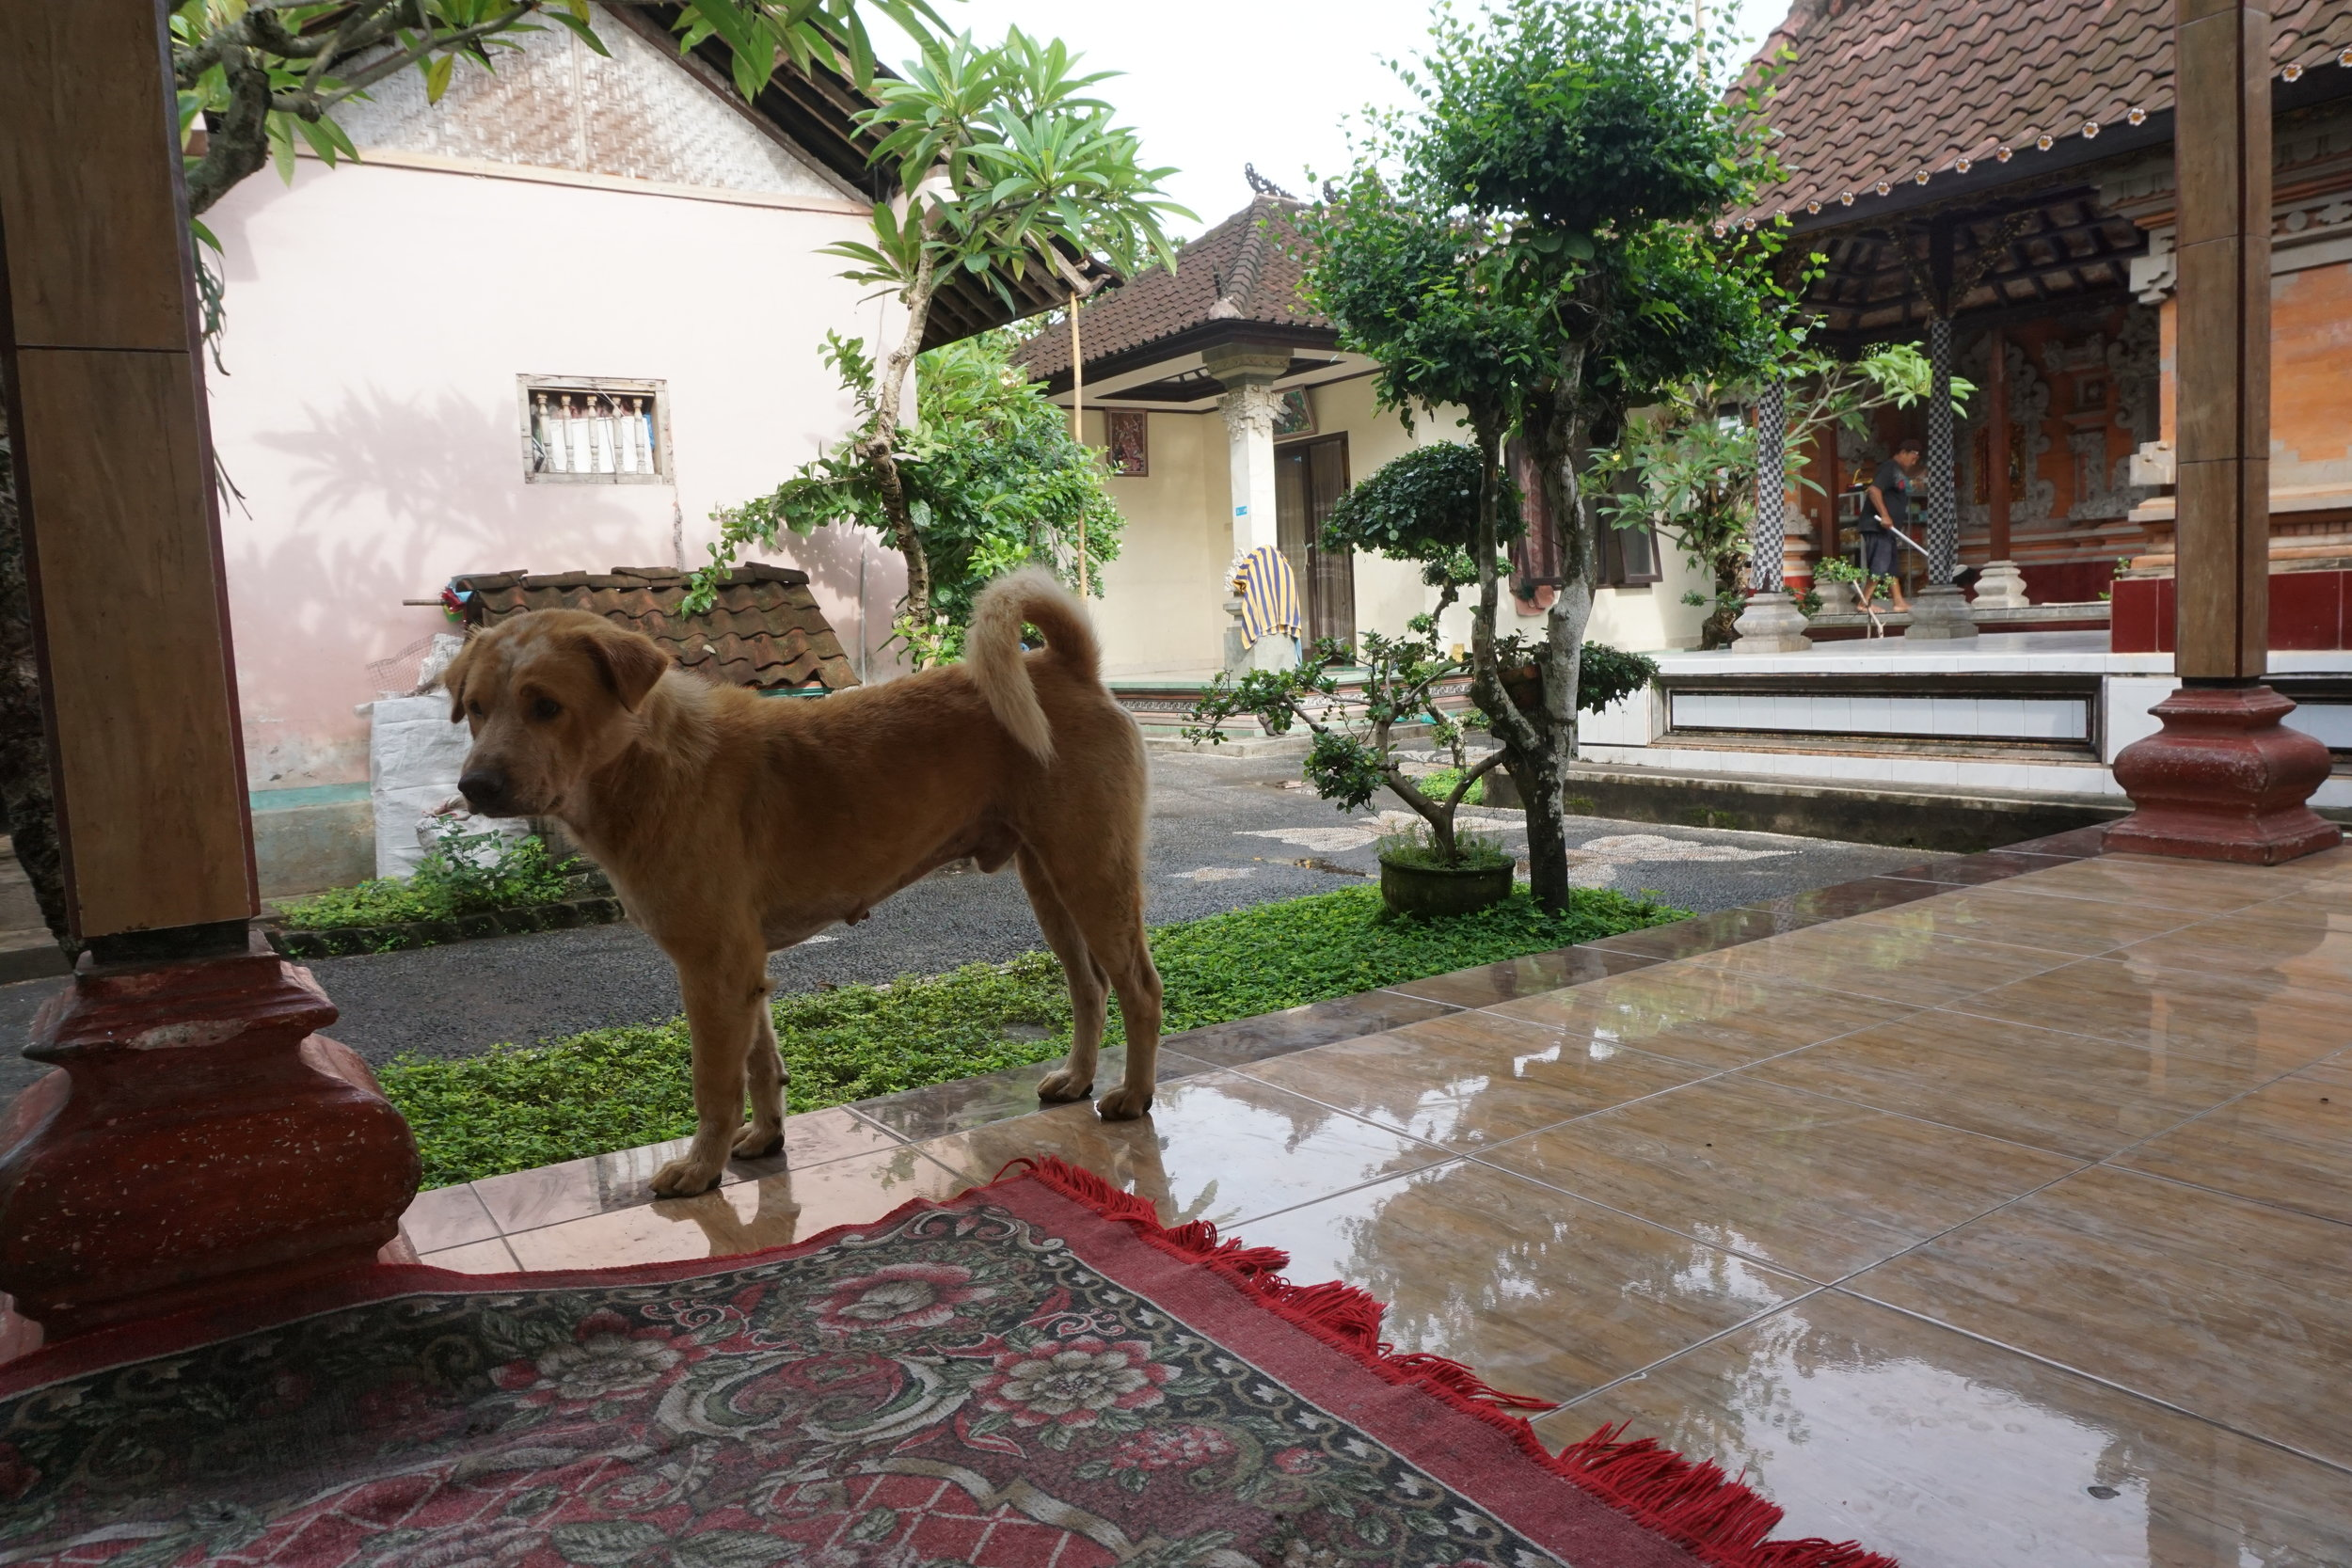 The verandah of the compound where we sat on the evenings. Family dog Putih on the front.